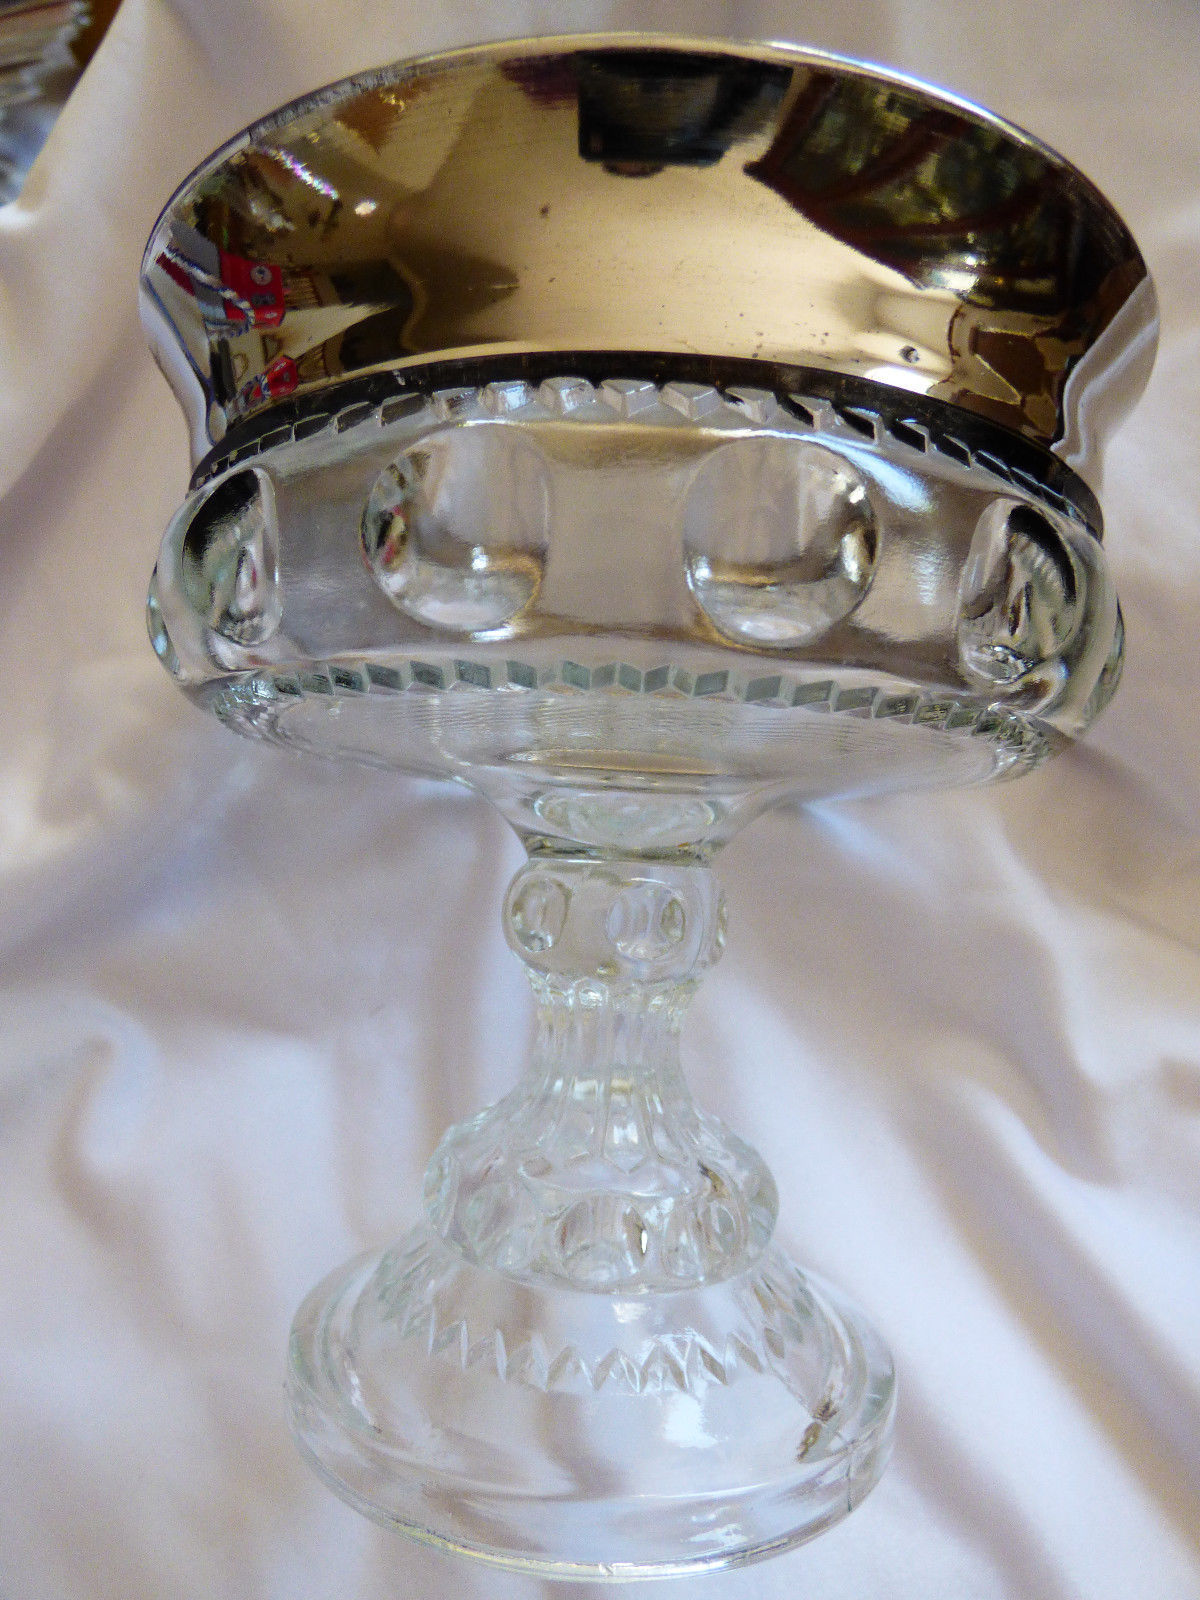 VTG Indiana glass Kings Crown Silve Flash Thumbprint Pedestal Compote Candy Bowl